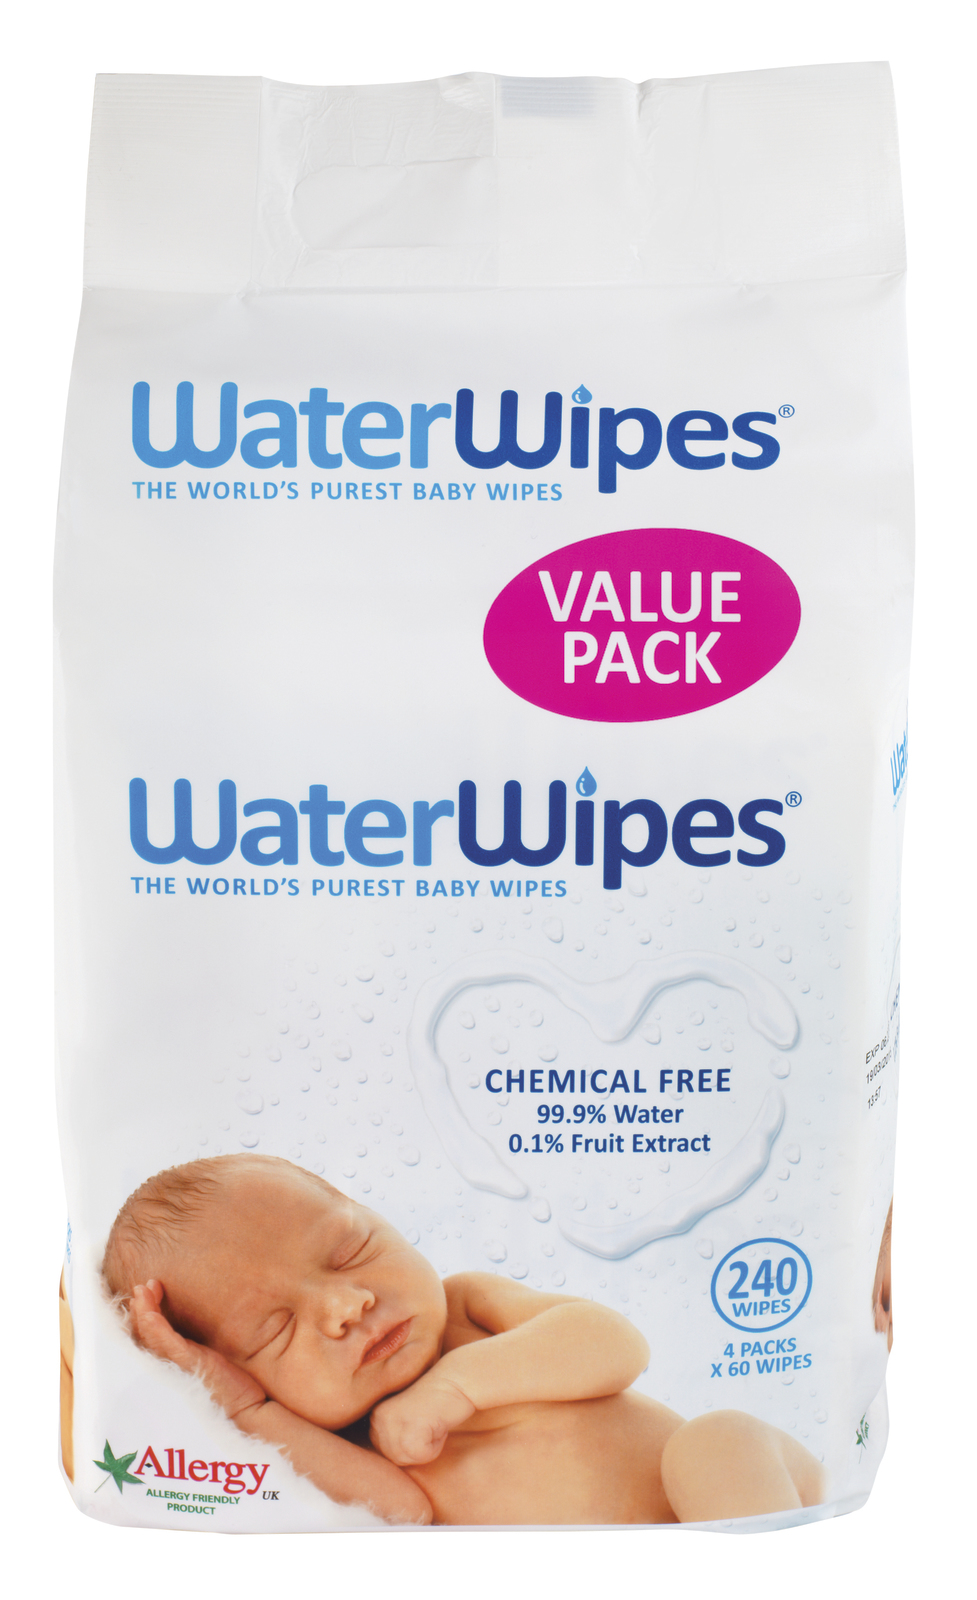 WaterWipes 4 Pack (240 Wipes) image